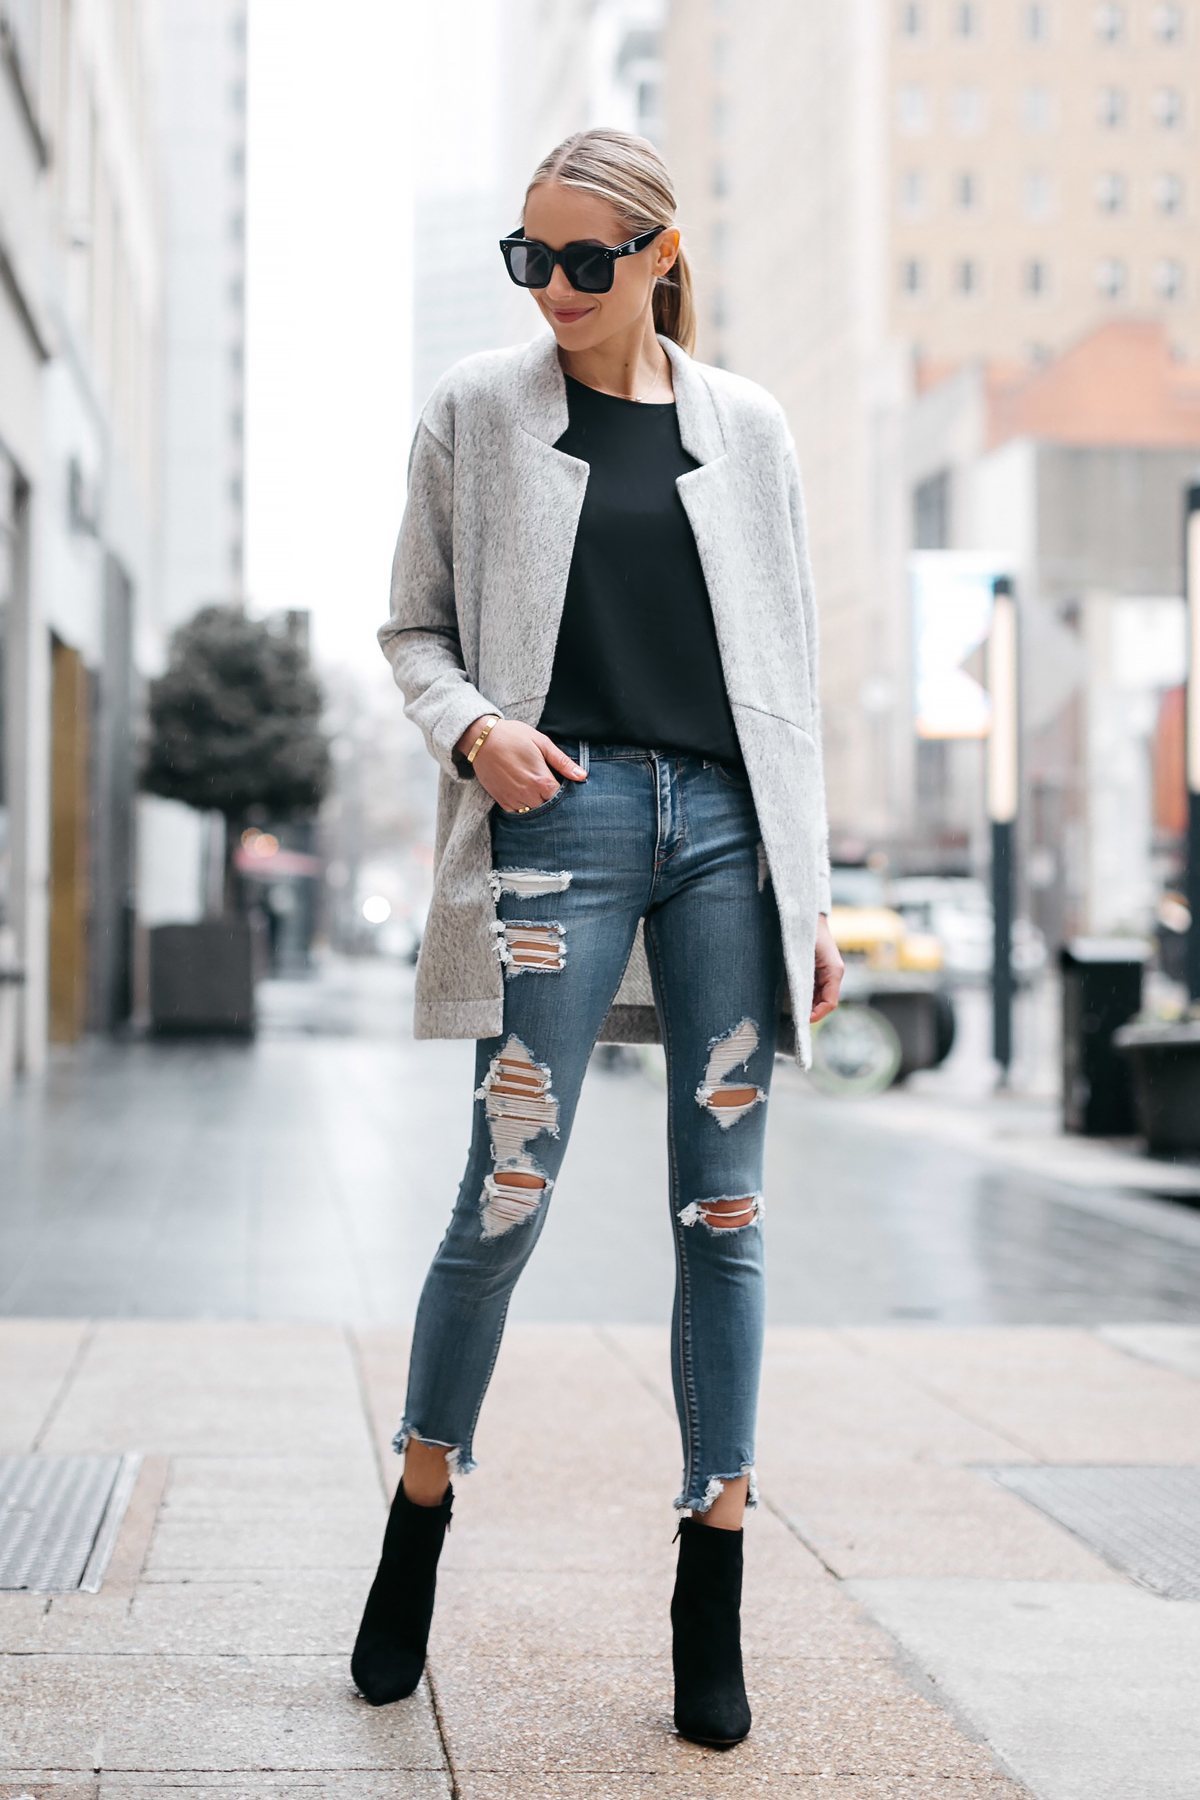 Blonde Woman Wearing Express Grey Coat Denim Ripped Skinny Jeans Black Booties Fashion Jackson Dallas Blogger Fashion Blogger Street Style